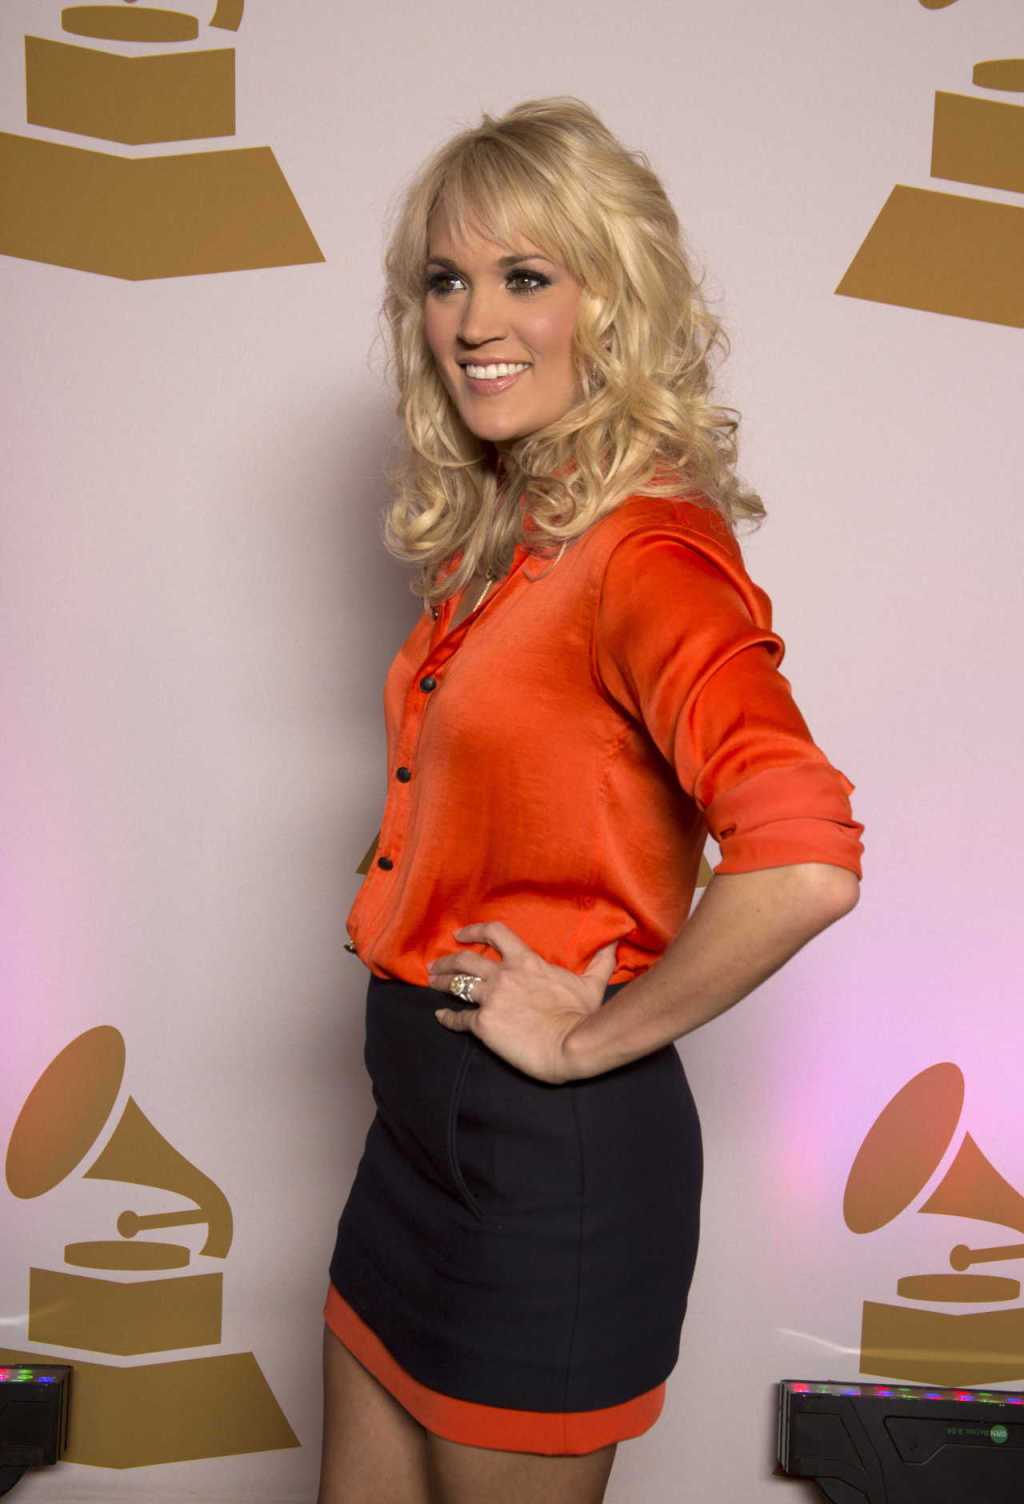 carrie-underwood-photos